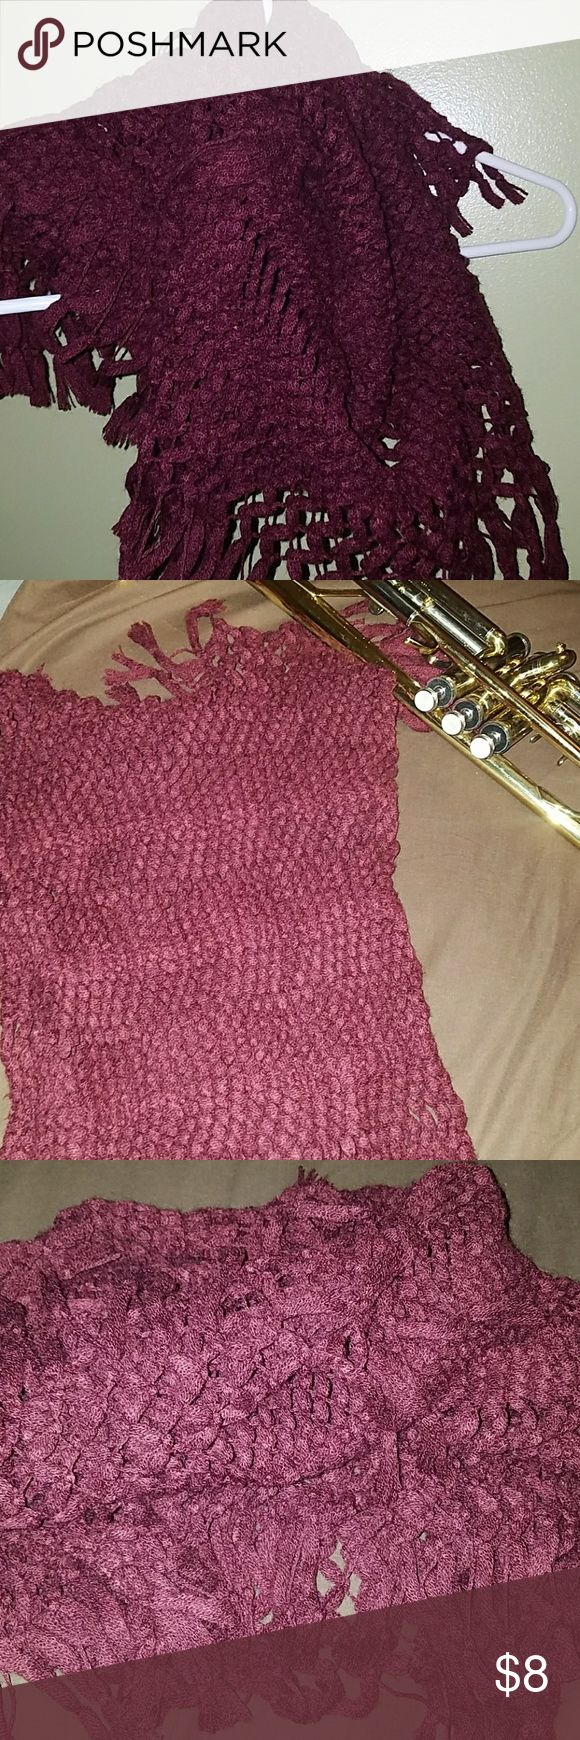 Burgundy scarf with tassles Burgundy knit infinity scarf. Super warm and so soft. Brand is Abercrombie, but I took the tag off because it was scratchy and visible. Abercrombie & Fitch Accessories Scarves & Wraps